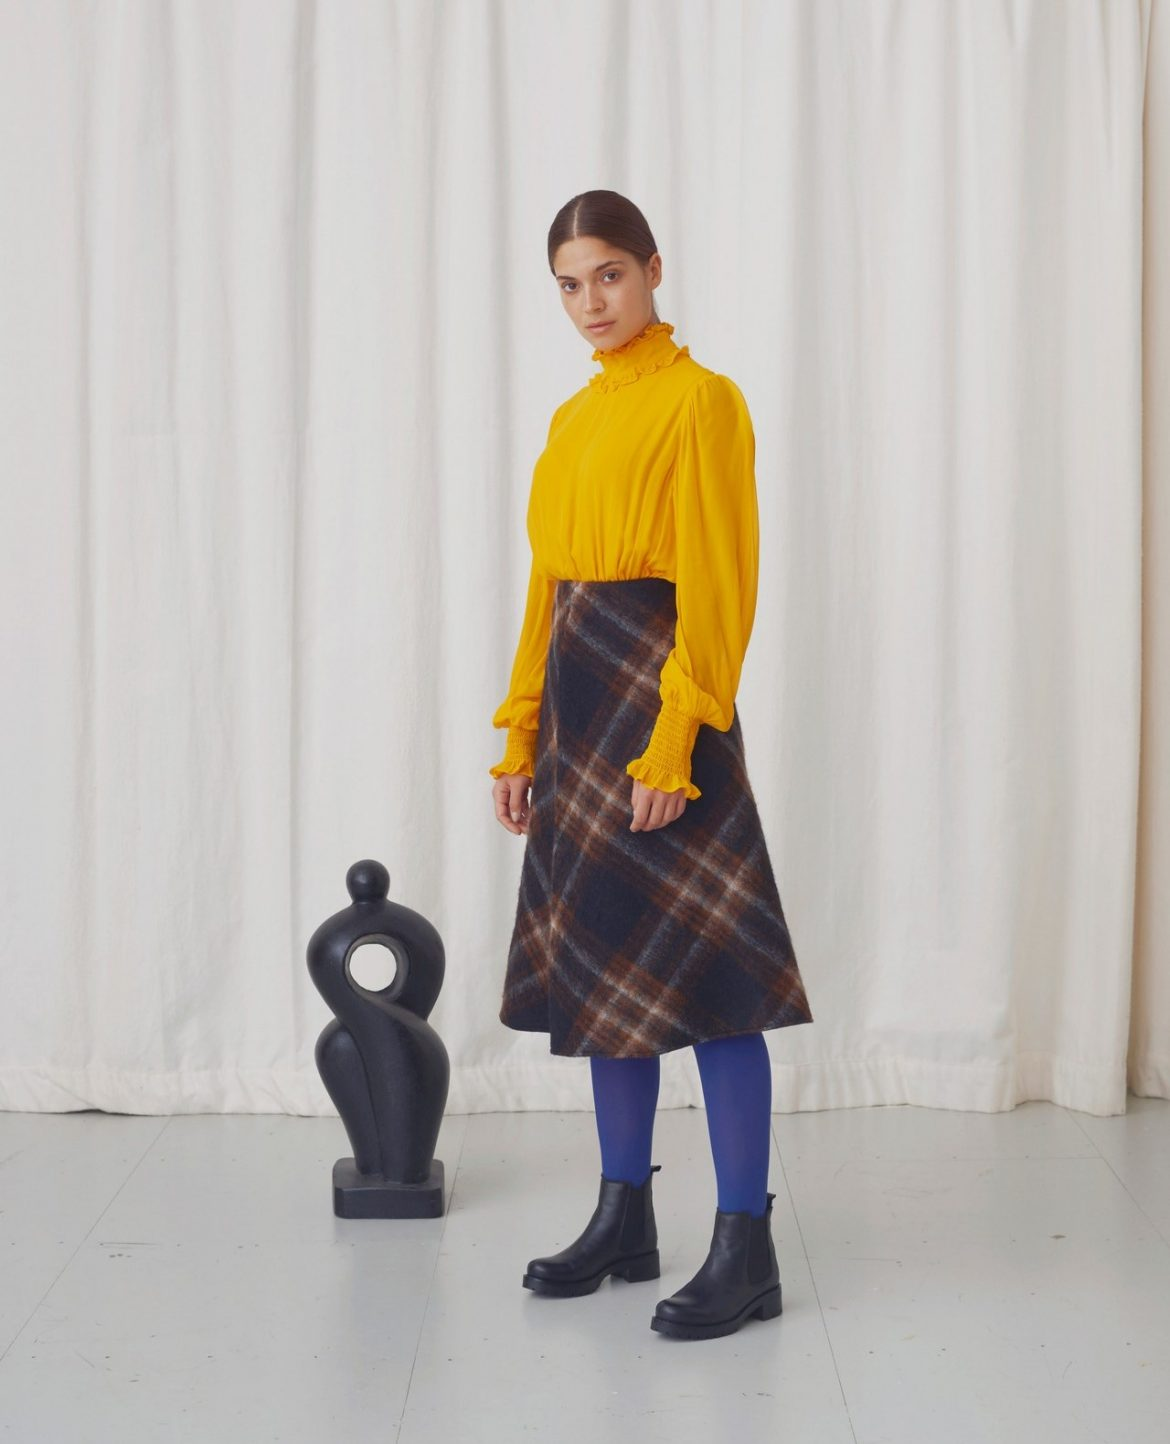 A-pair-of-black-chelsea-boots-goes-with-any-autumn.fnaoh588e60e5ee05feb6a89e89ce8a4e0f3doe5DF2FFFE.jpeg